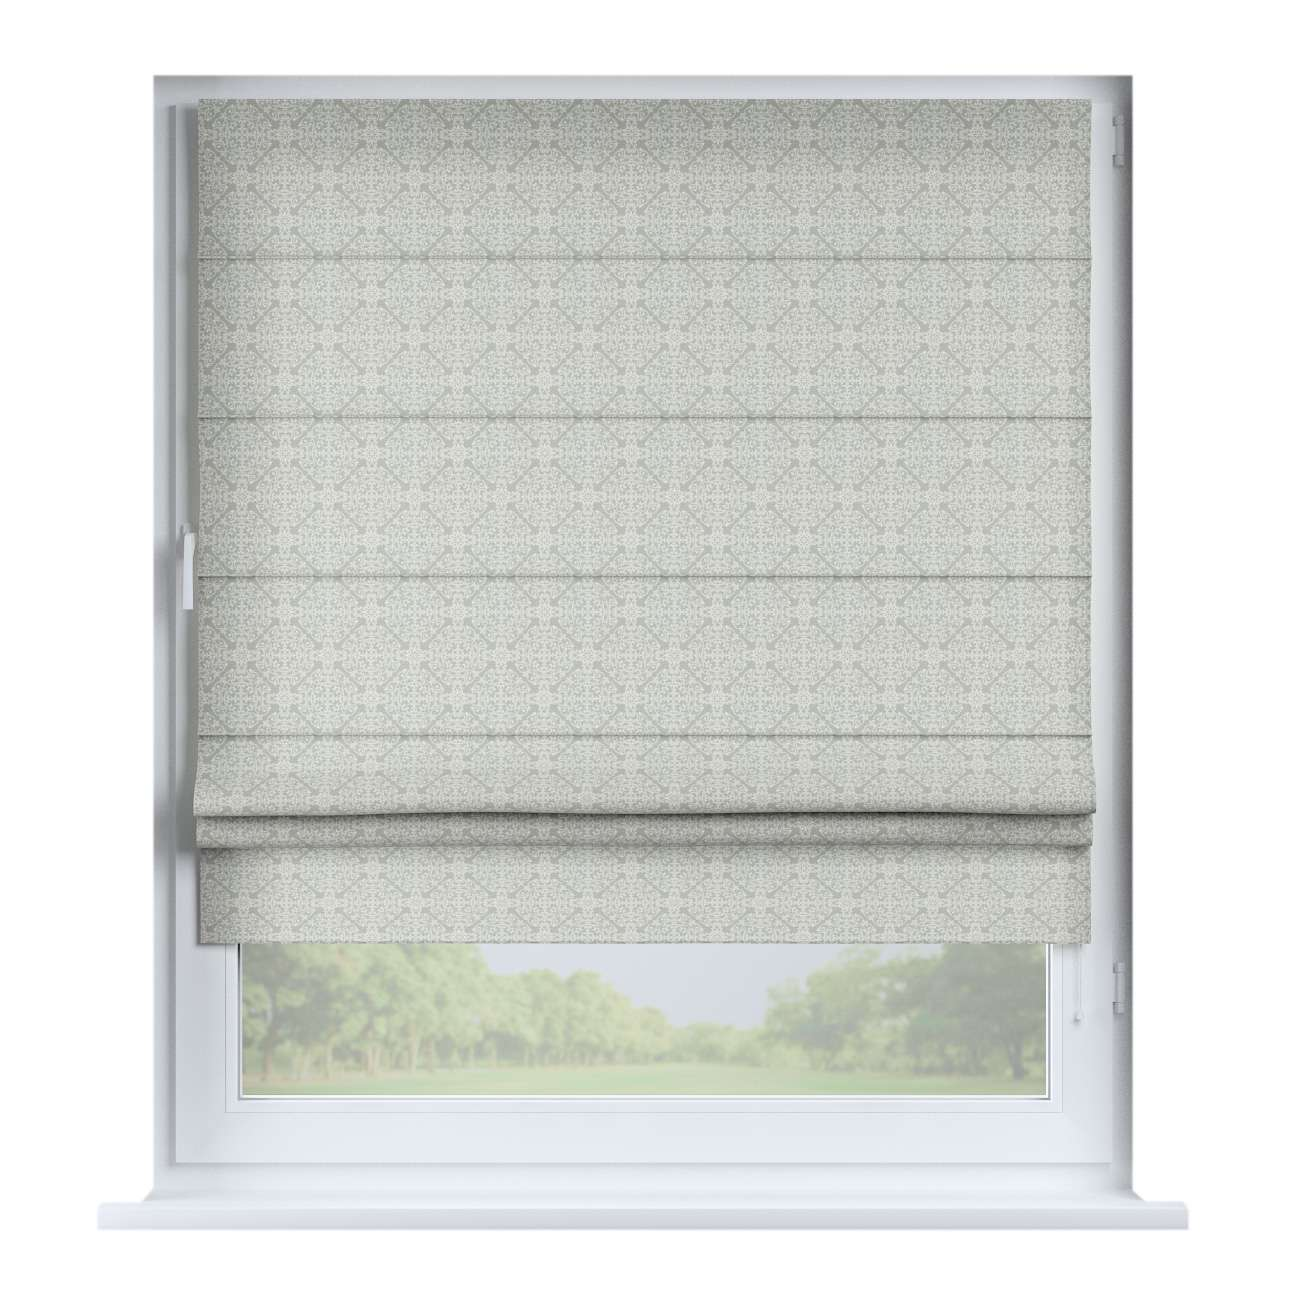 Padva roman blind  80 × 170 cm (31.5 × 67 inch) in collection Flowers, fabric: 140-38